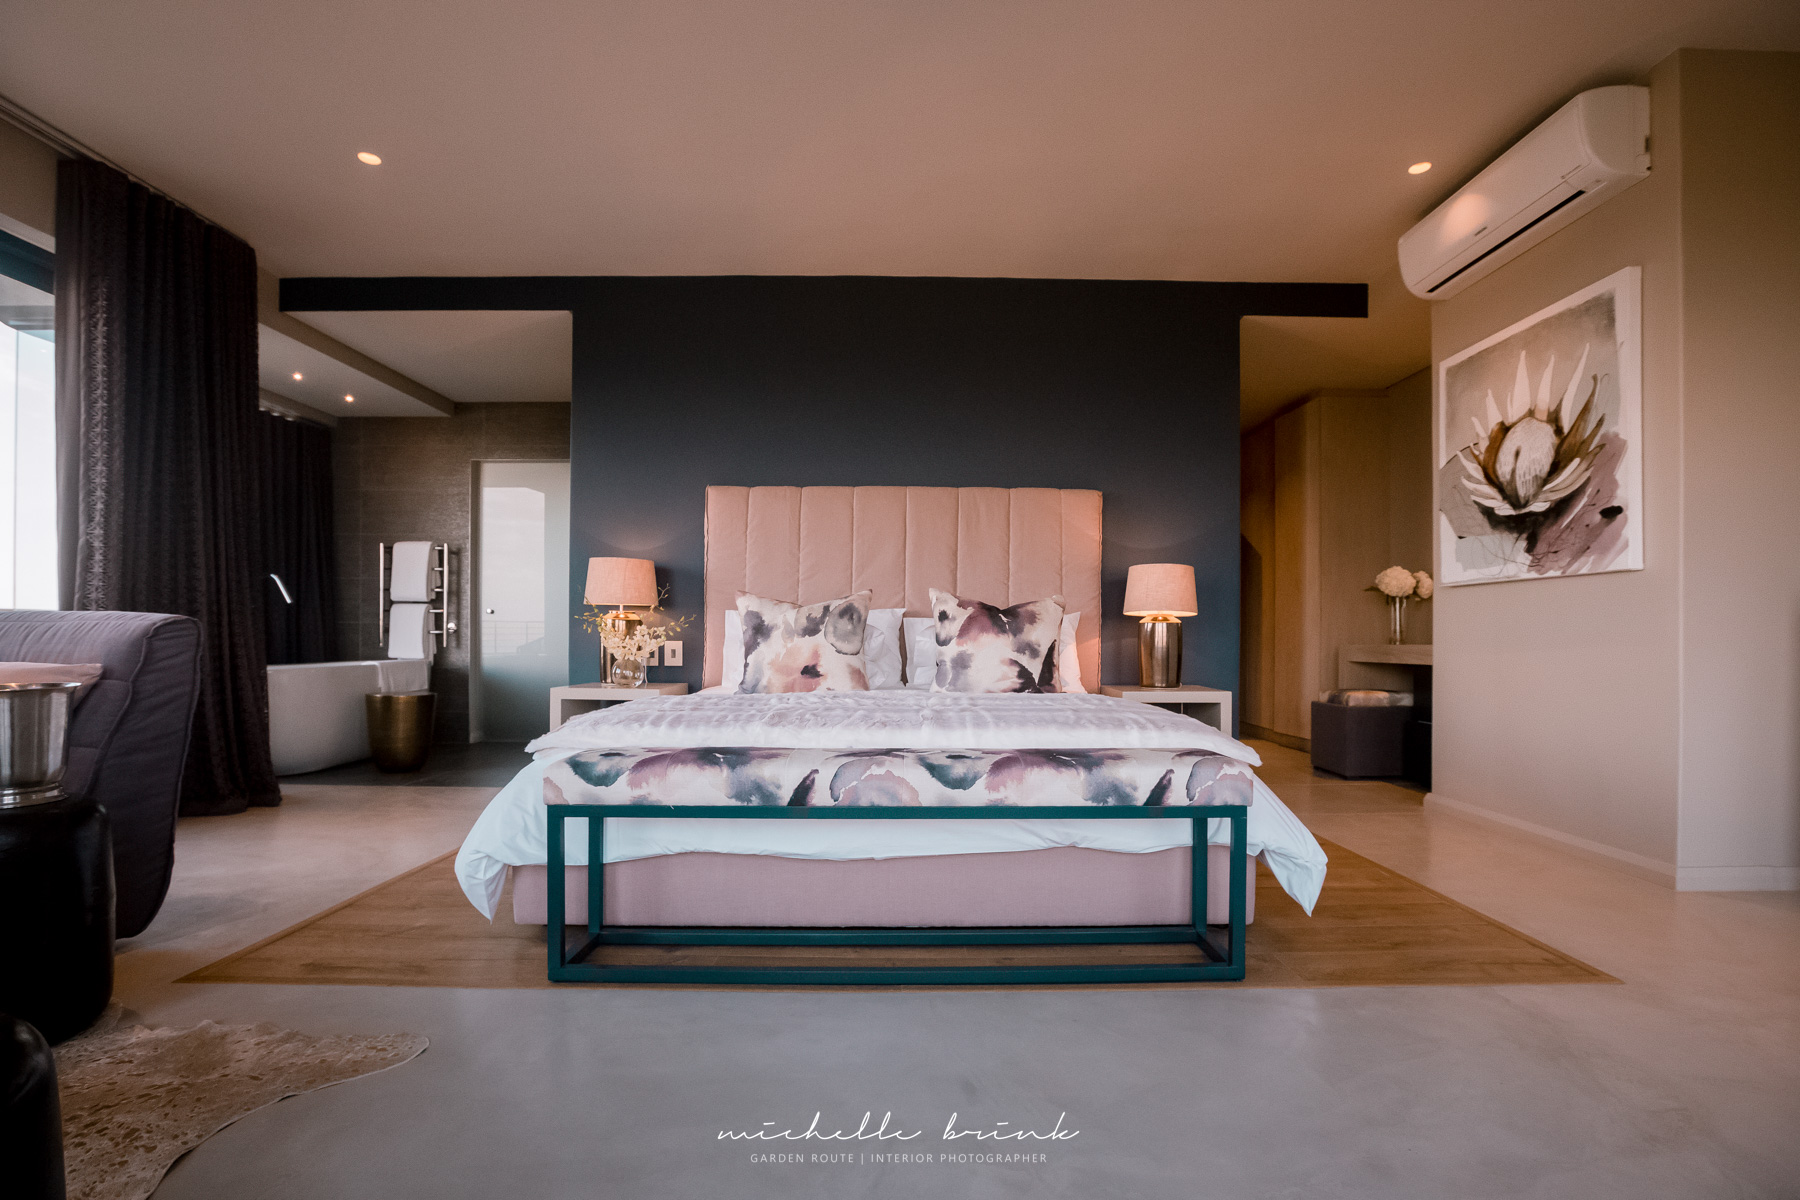 Michelle Brink Garden Route Interior Photographer